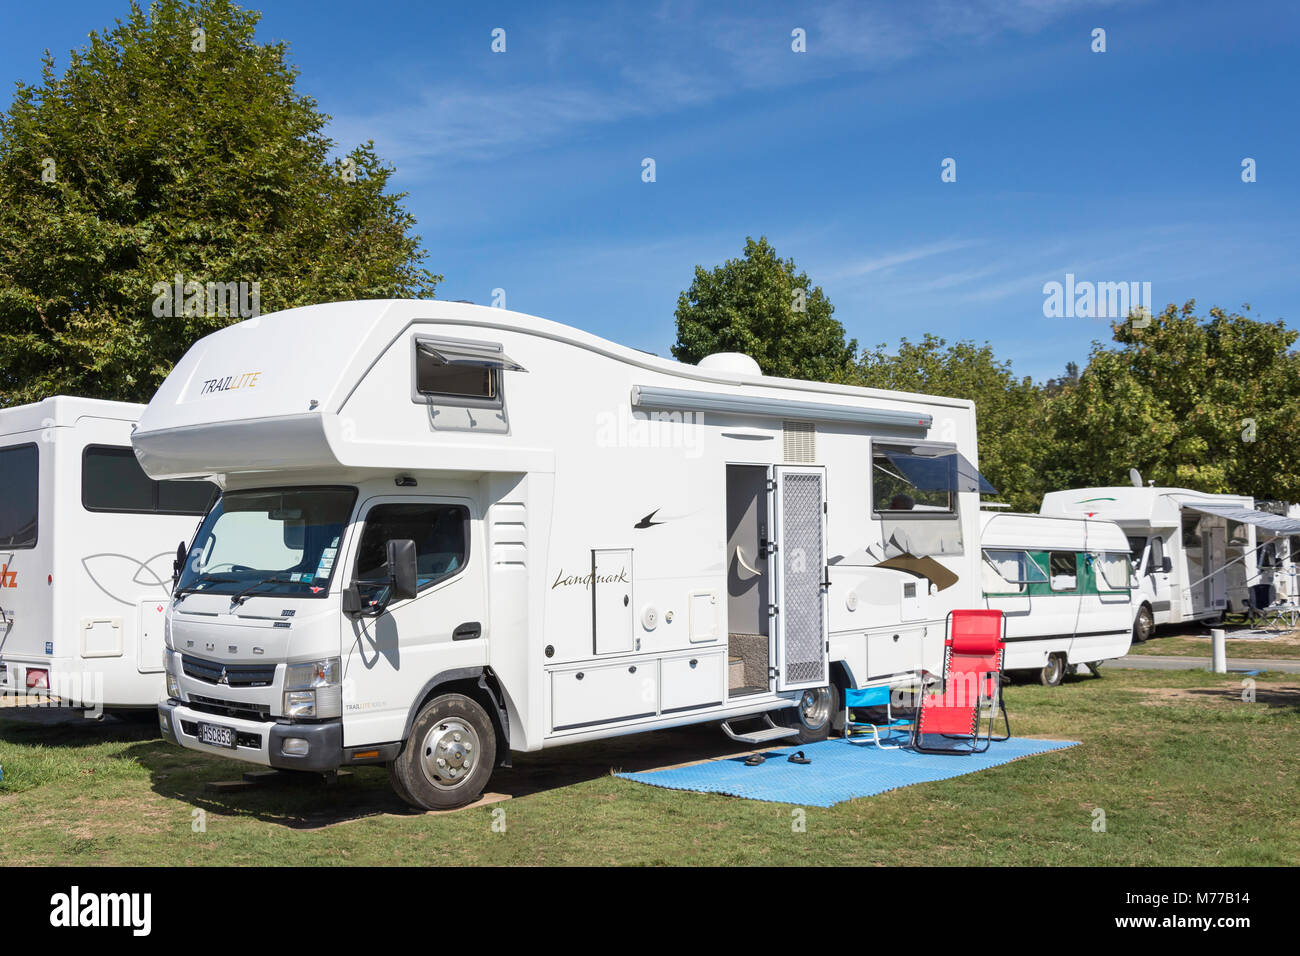 TrailLite Motorhome in campsite at Kaiteriteri Recreation Reserve, Kaiteriteri Beach, Kaiteriteri, Tasman District, - Stock Image